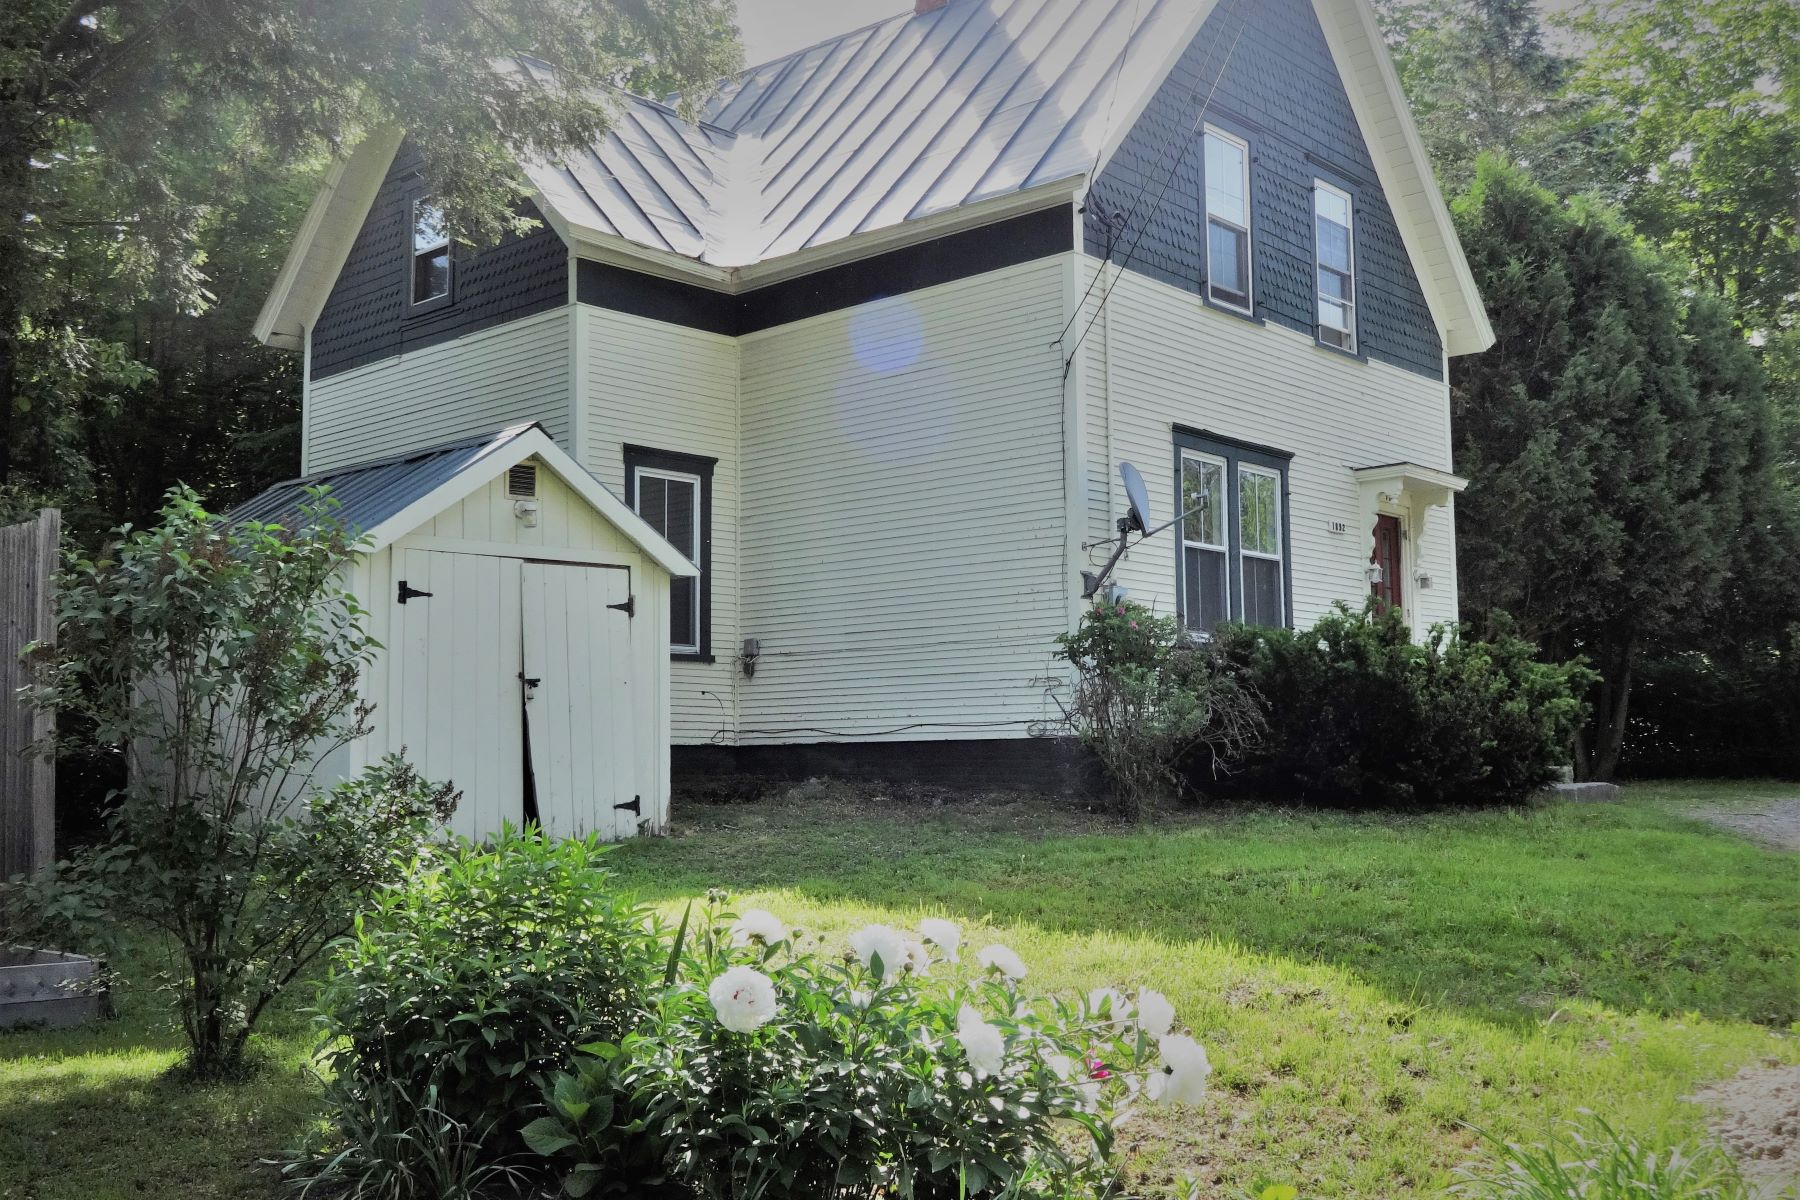 Single Family Home for Sale at 76 Pleasant Street, Bethel 76 Pleasant St Bethel, Vermont 05032 United States